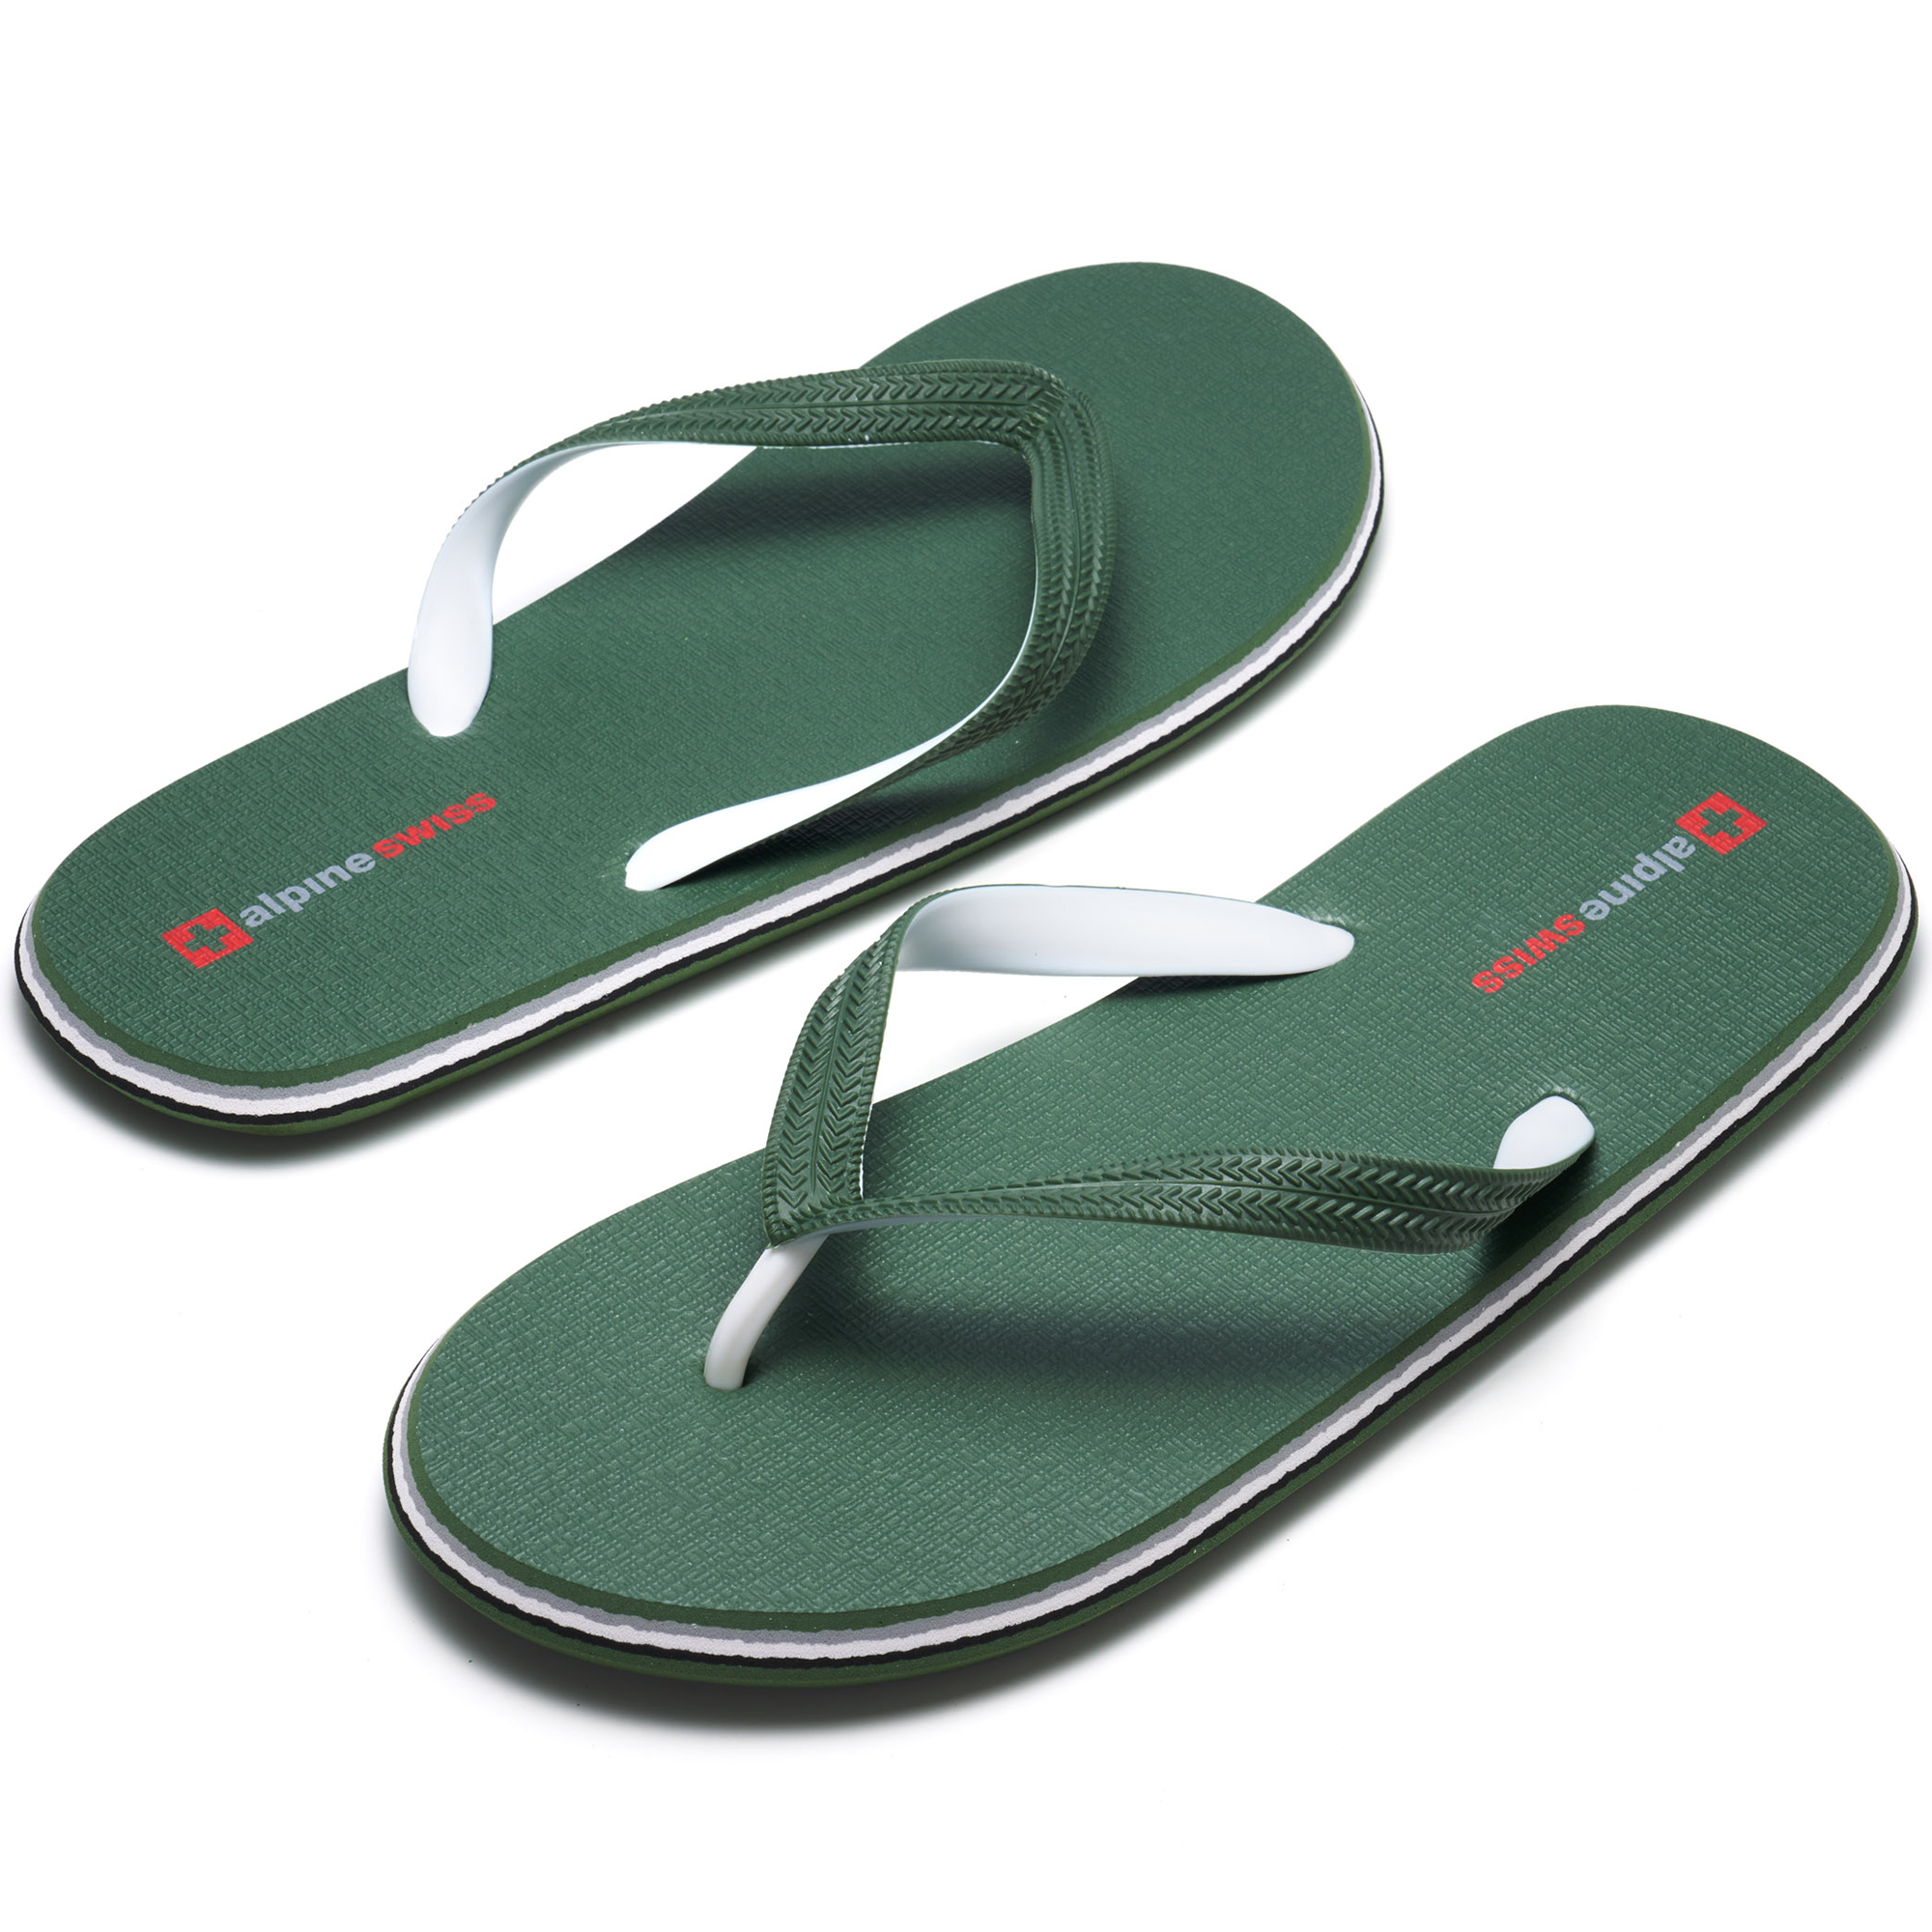 Alpine-Swiss-Mens-Flip-Flops-Beach-Sandals-Lightweight-EVA-Sole-Comfort-Thongs thumbnail 30